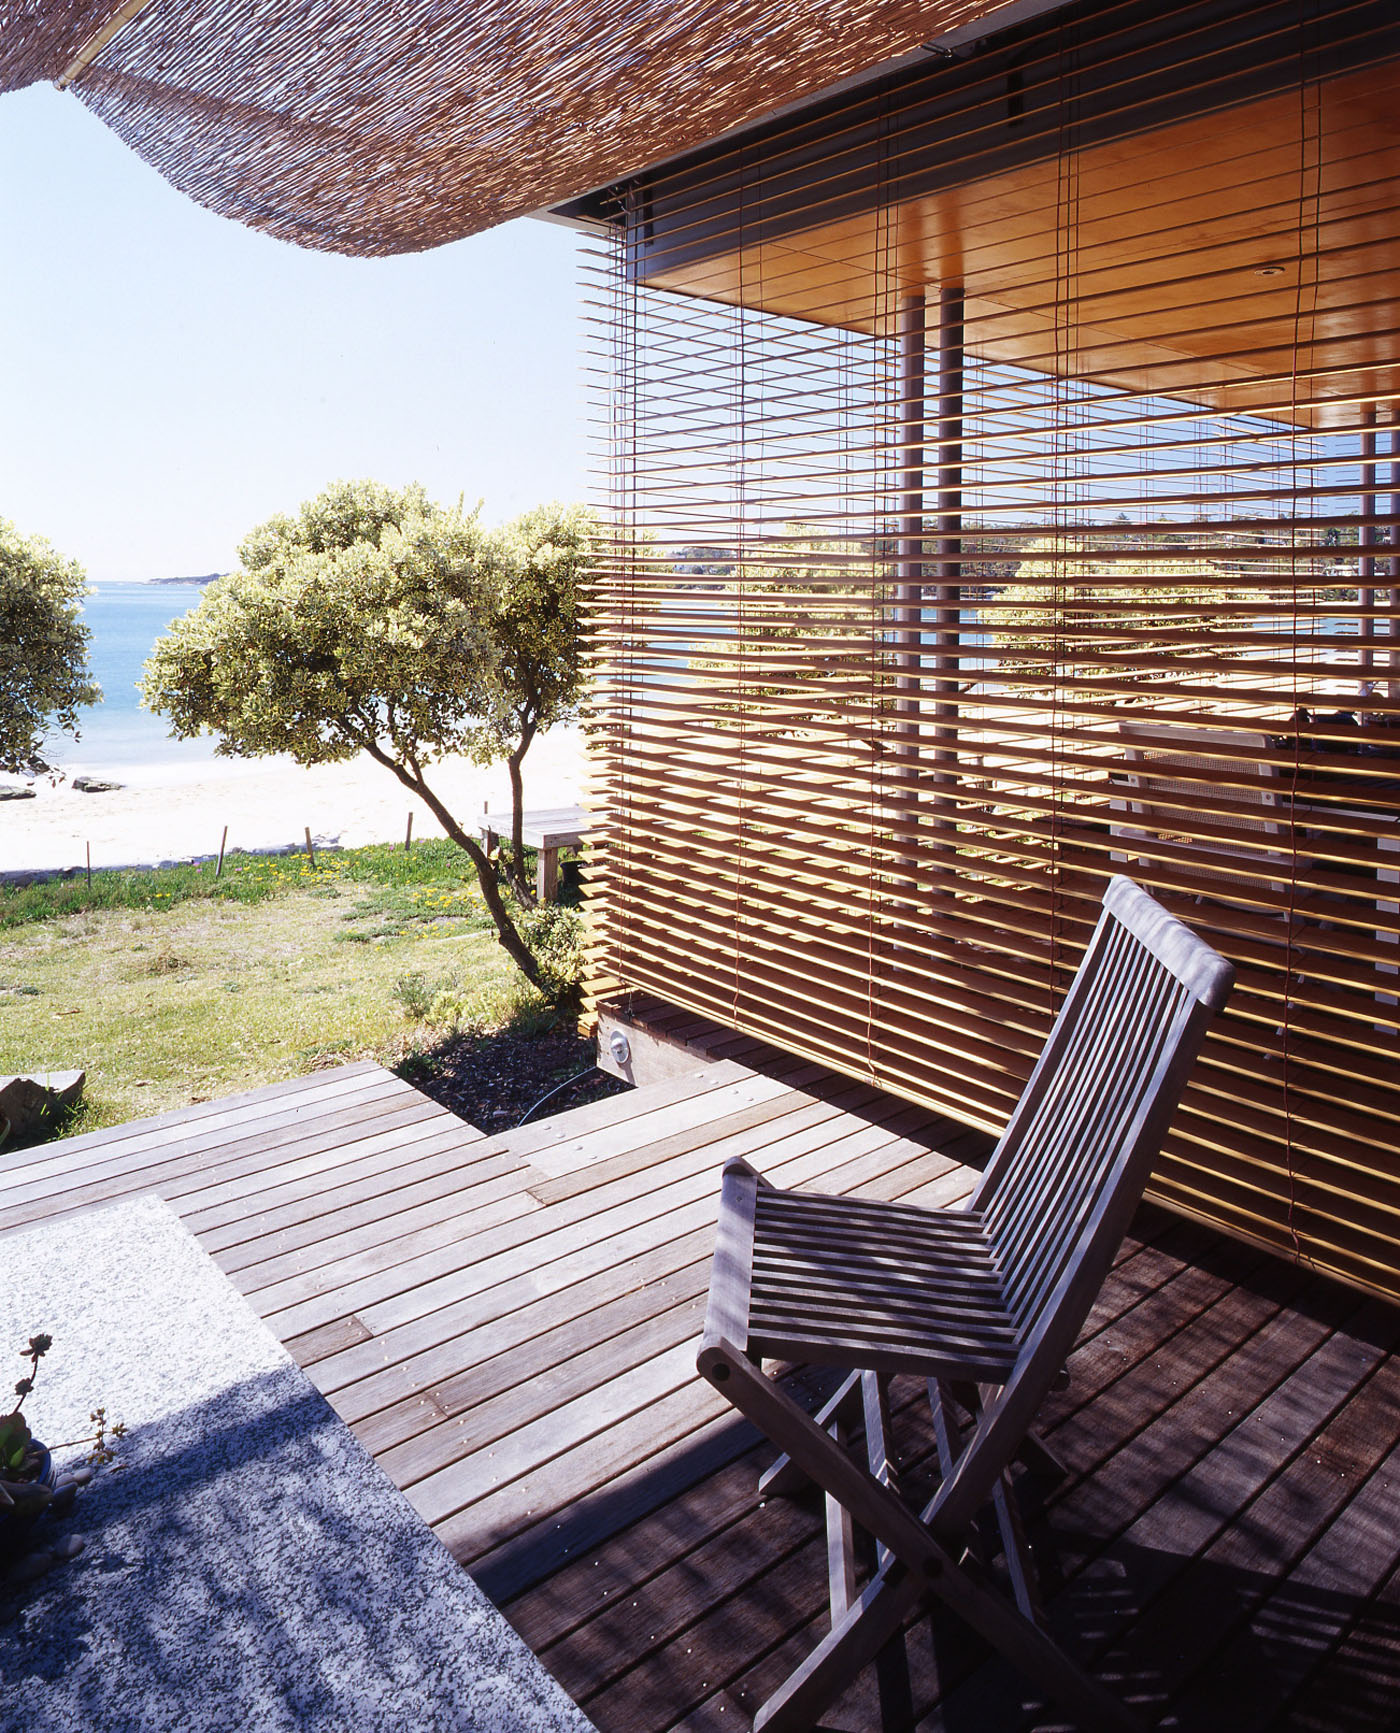 Bundeena Beach House by Sydney award winning residential architecture firm Sam Crawford Architects. View to open deck with timber louver infiltrating north eastern sunlight.